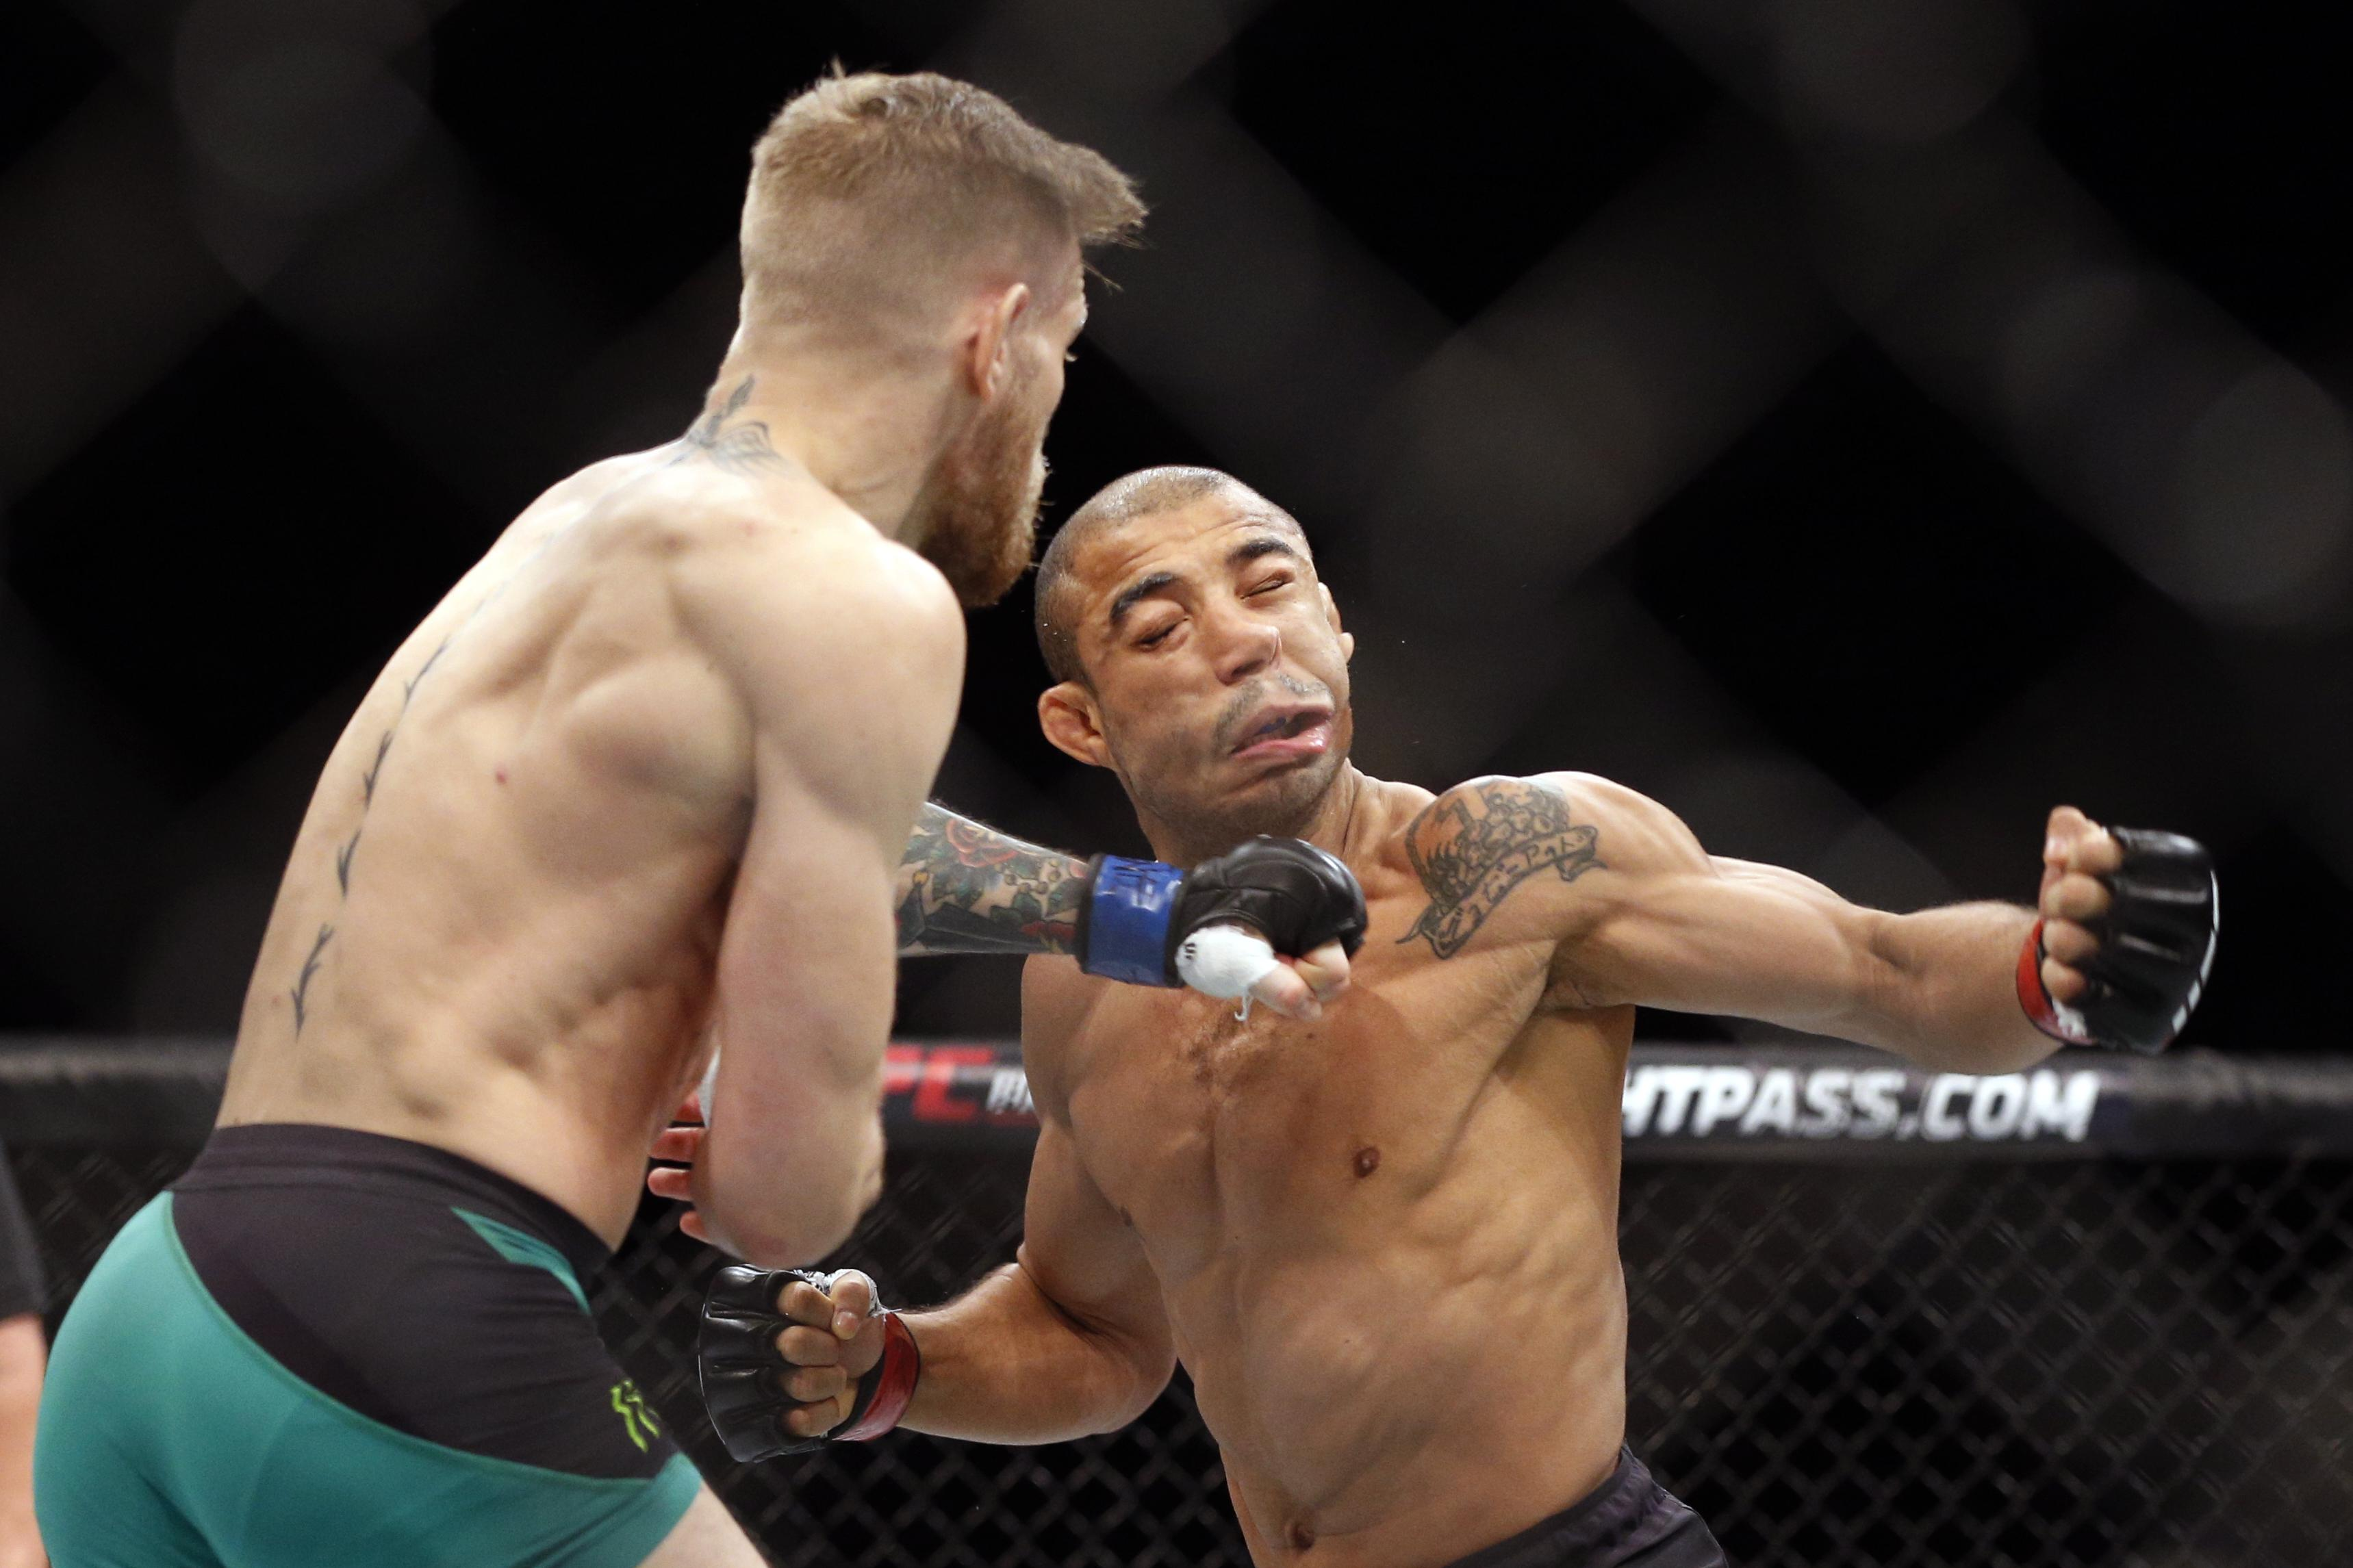 Conor McGregor's left hand is one of the most powerful in all of MMA - as Jose Aldo found out